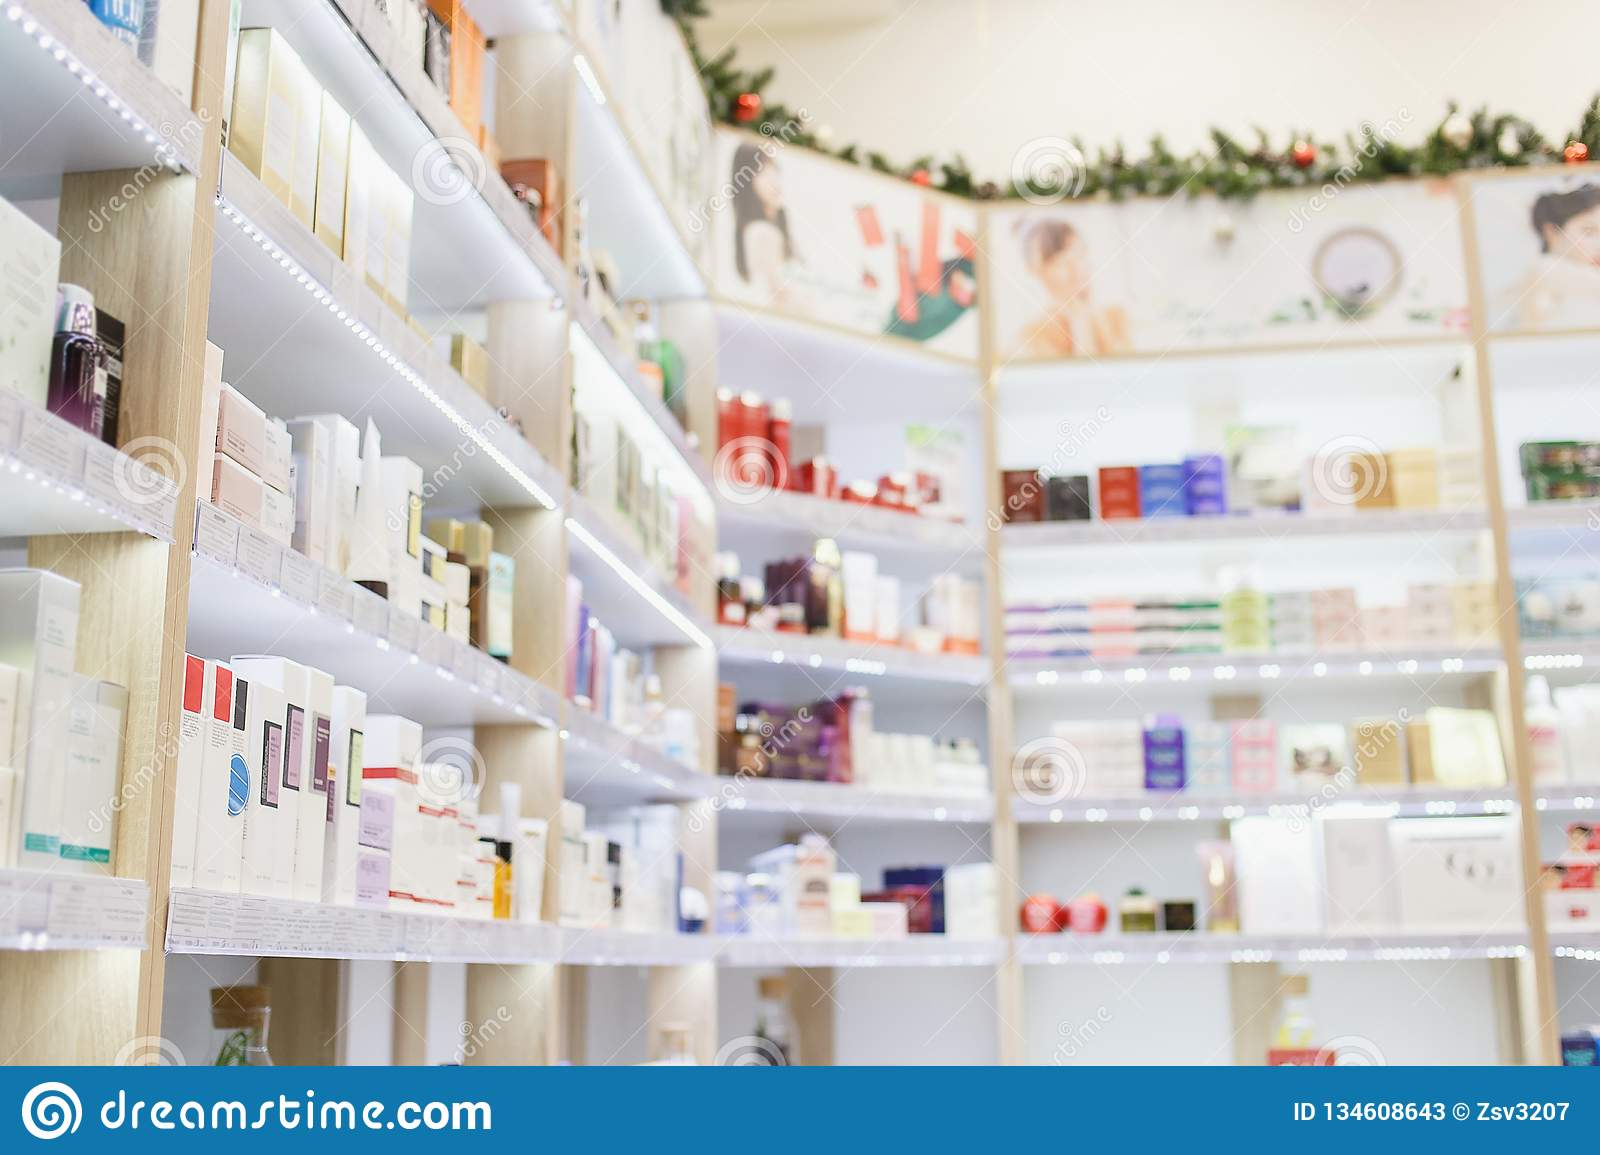 Shelves With Skin And Hair Care Products In A Cosmetic Store Stock Image Image Of Hair Skin 134608643